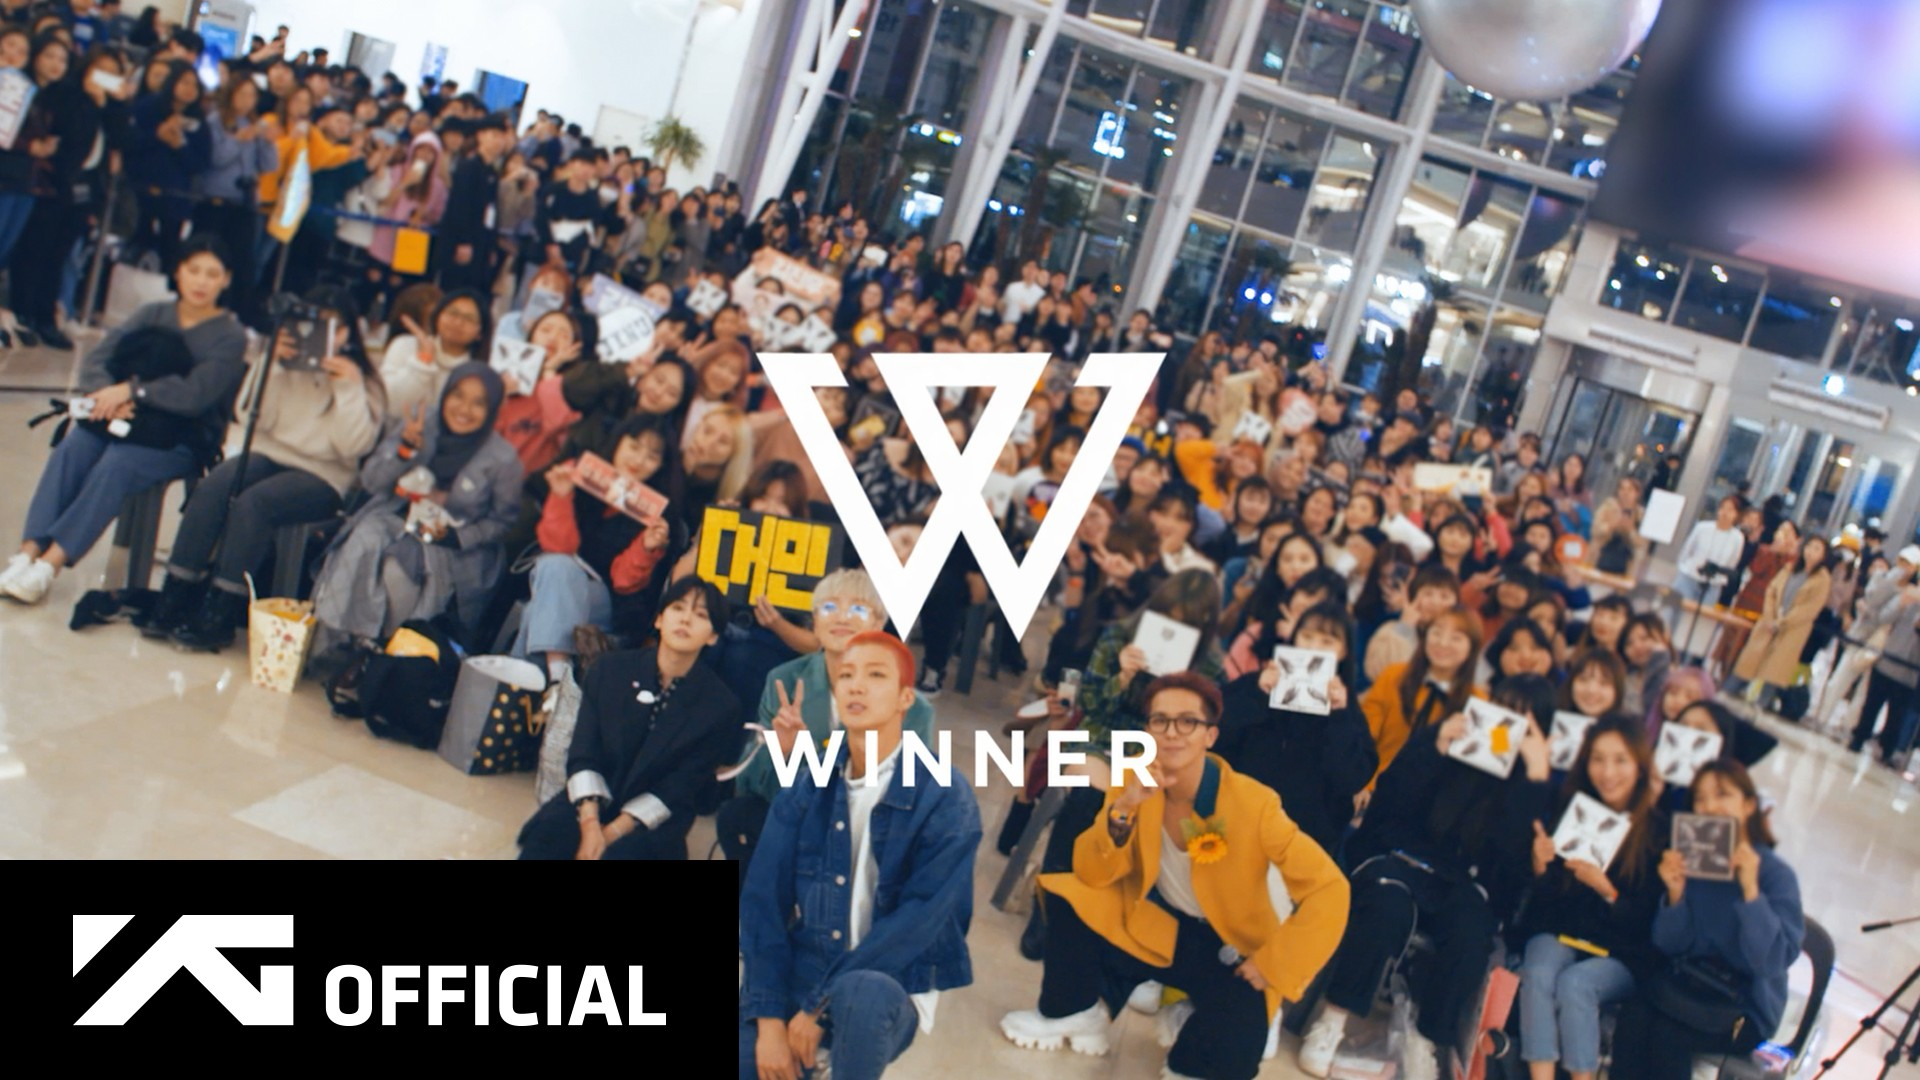 WINNER - 'CROSS' FAN-SIGNING DAY IN YEONGDEUNGPO